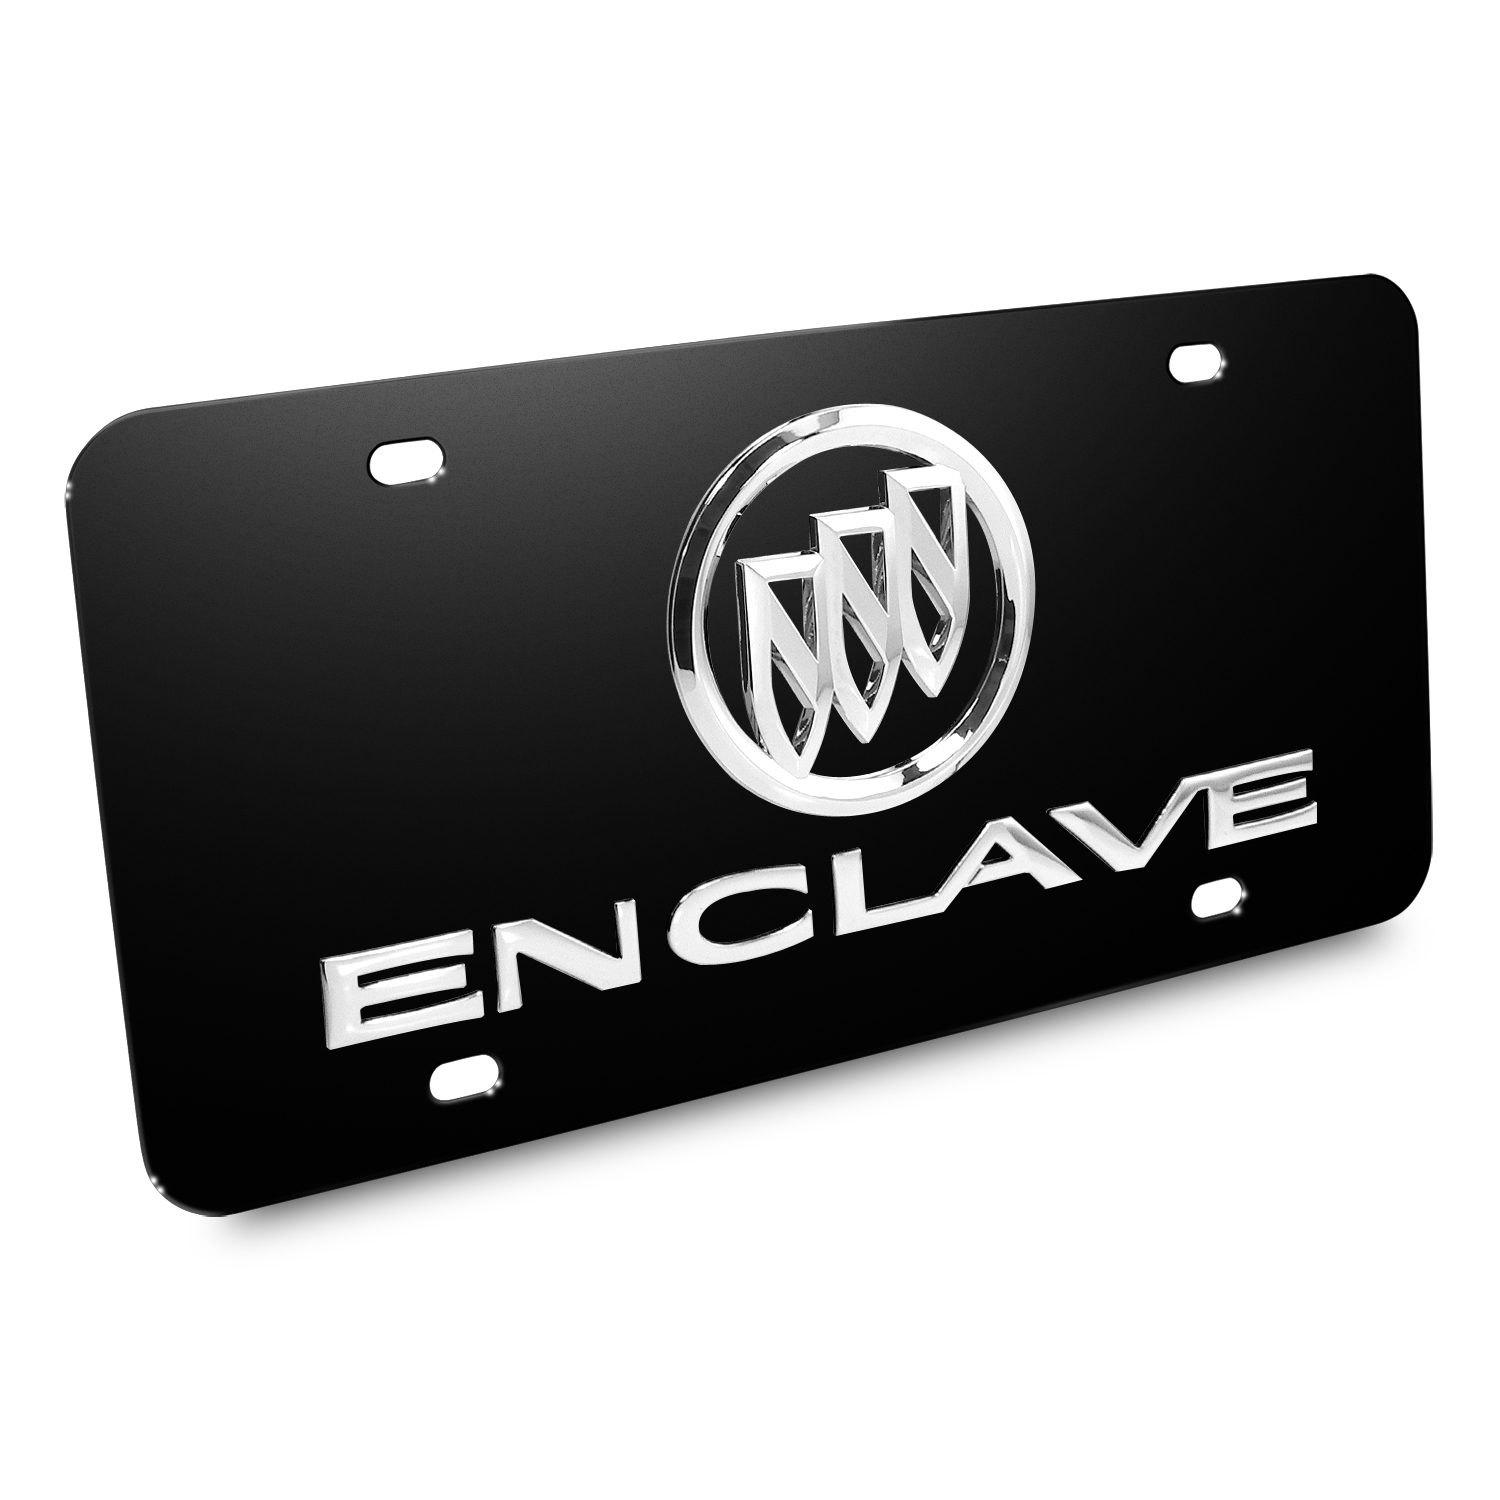 Buick Enclave 3D Logo Black Stainless Steel License Plate